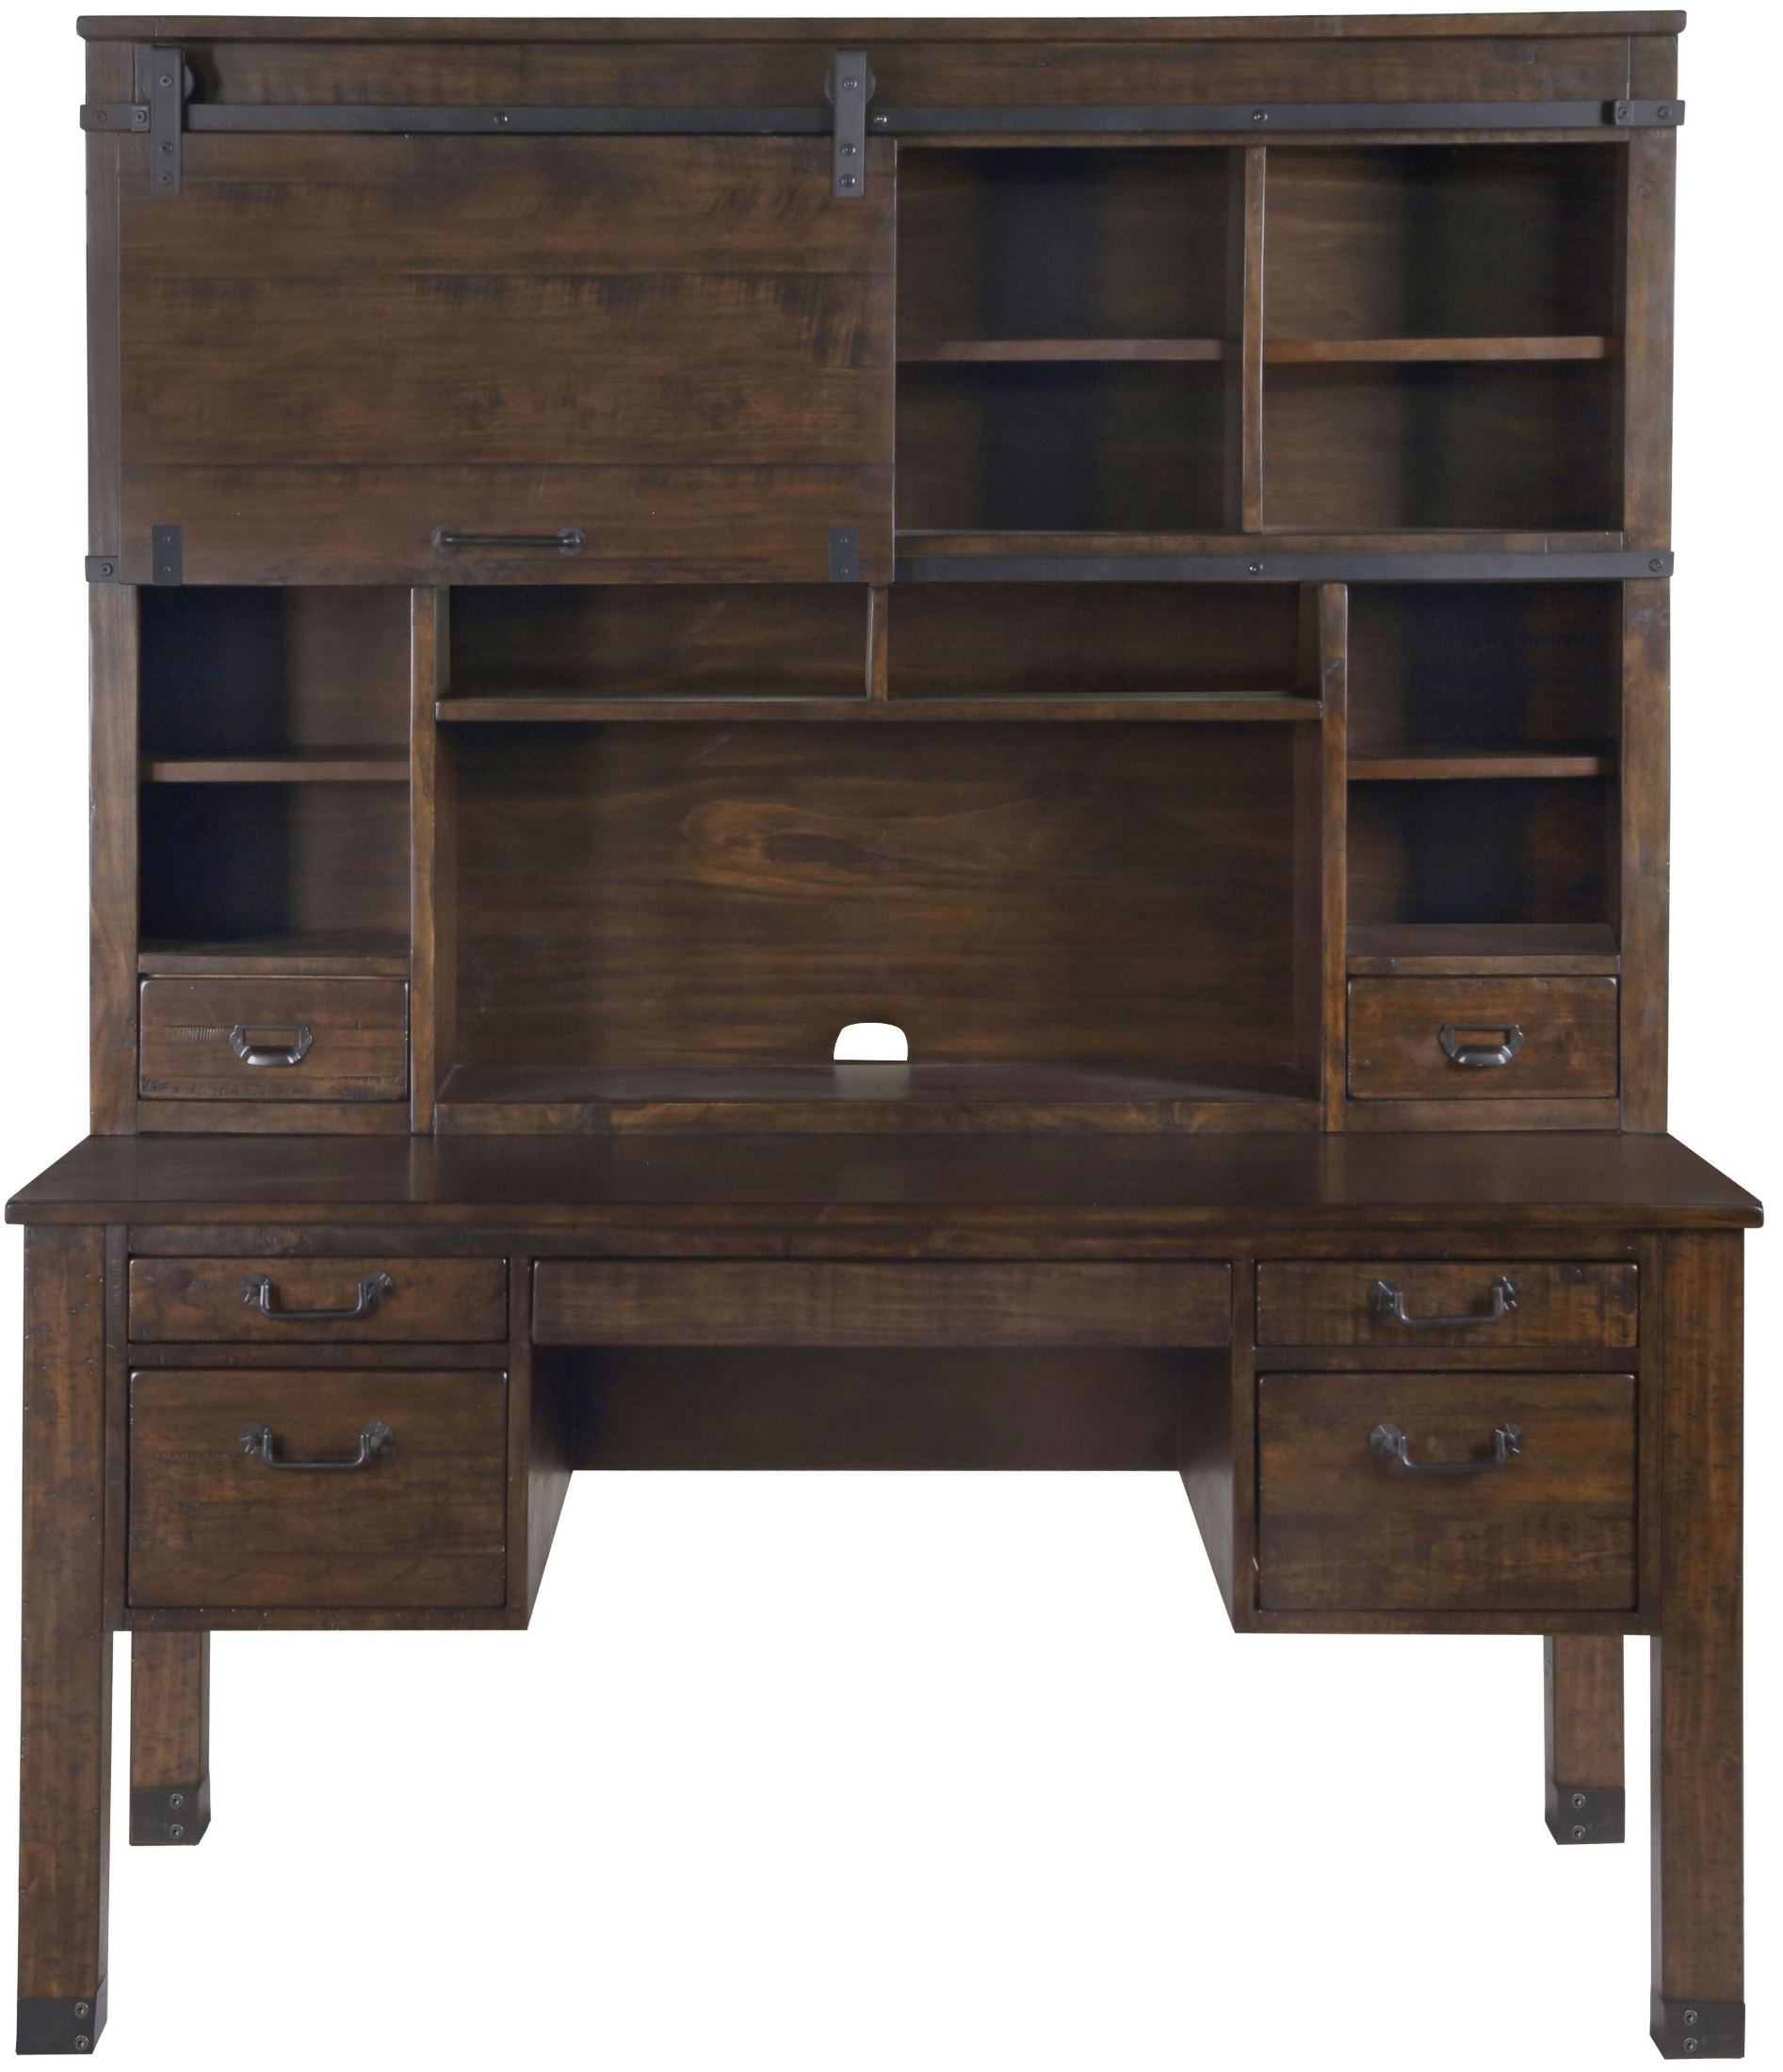 Rustic Home Office Interior Design: Pine Hill Rustic Pine Writing Desk Home Office Set, H3561